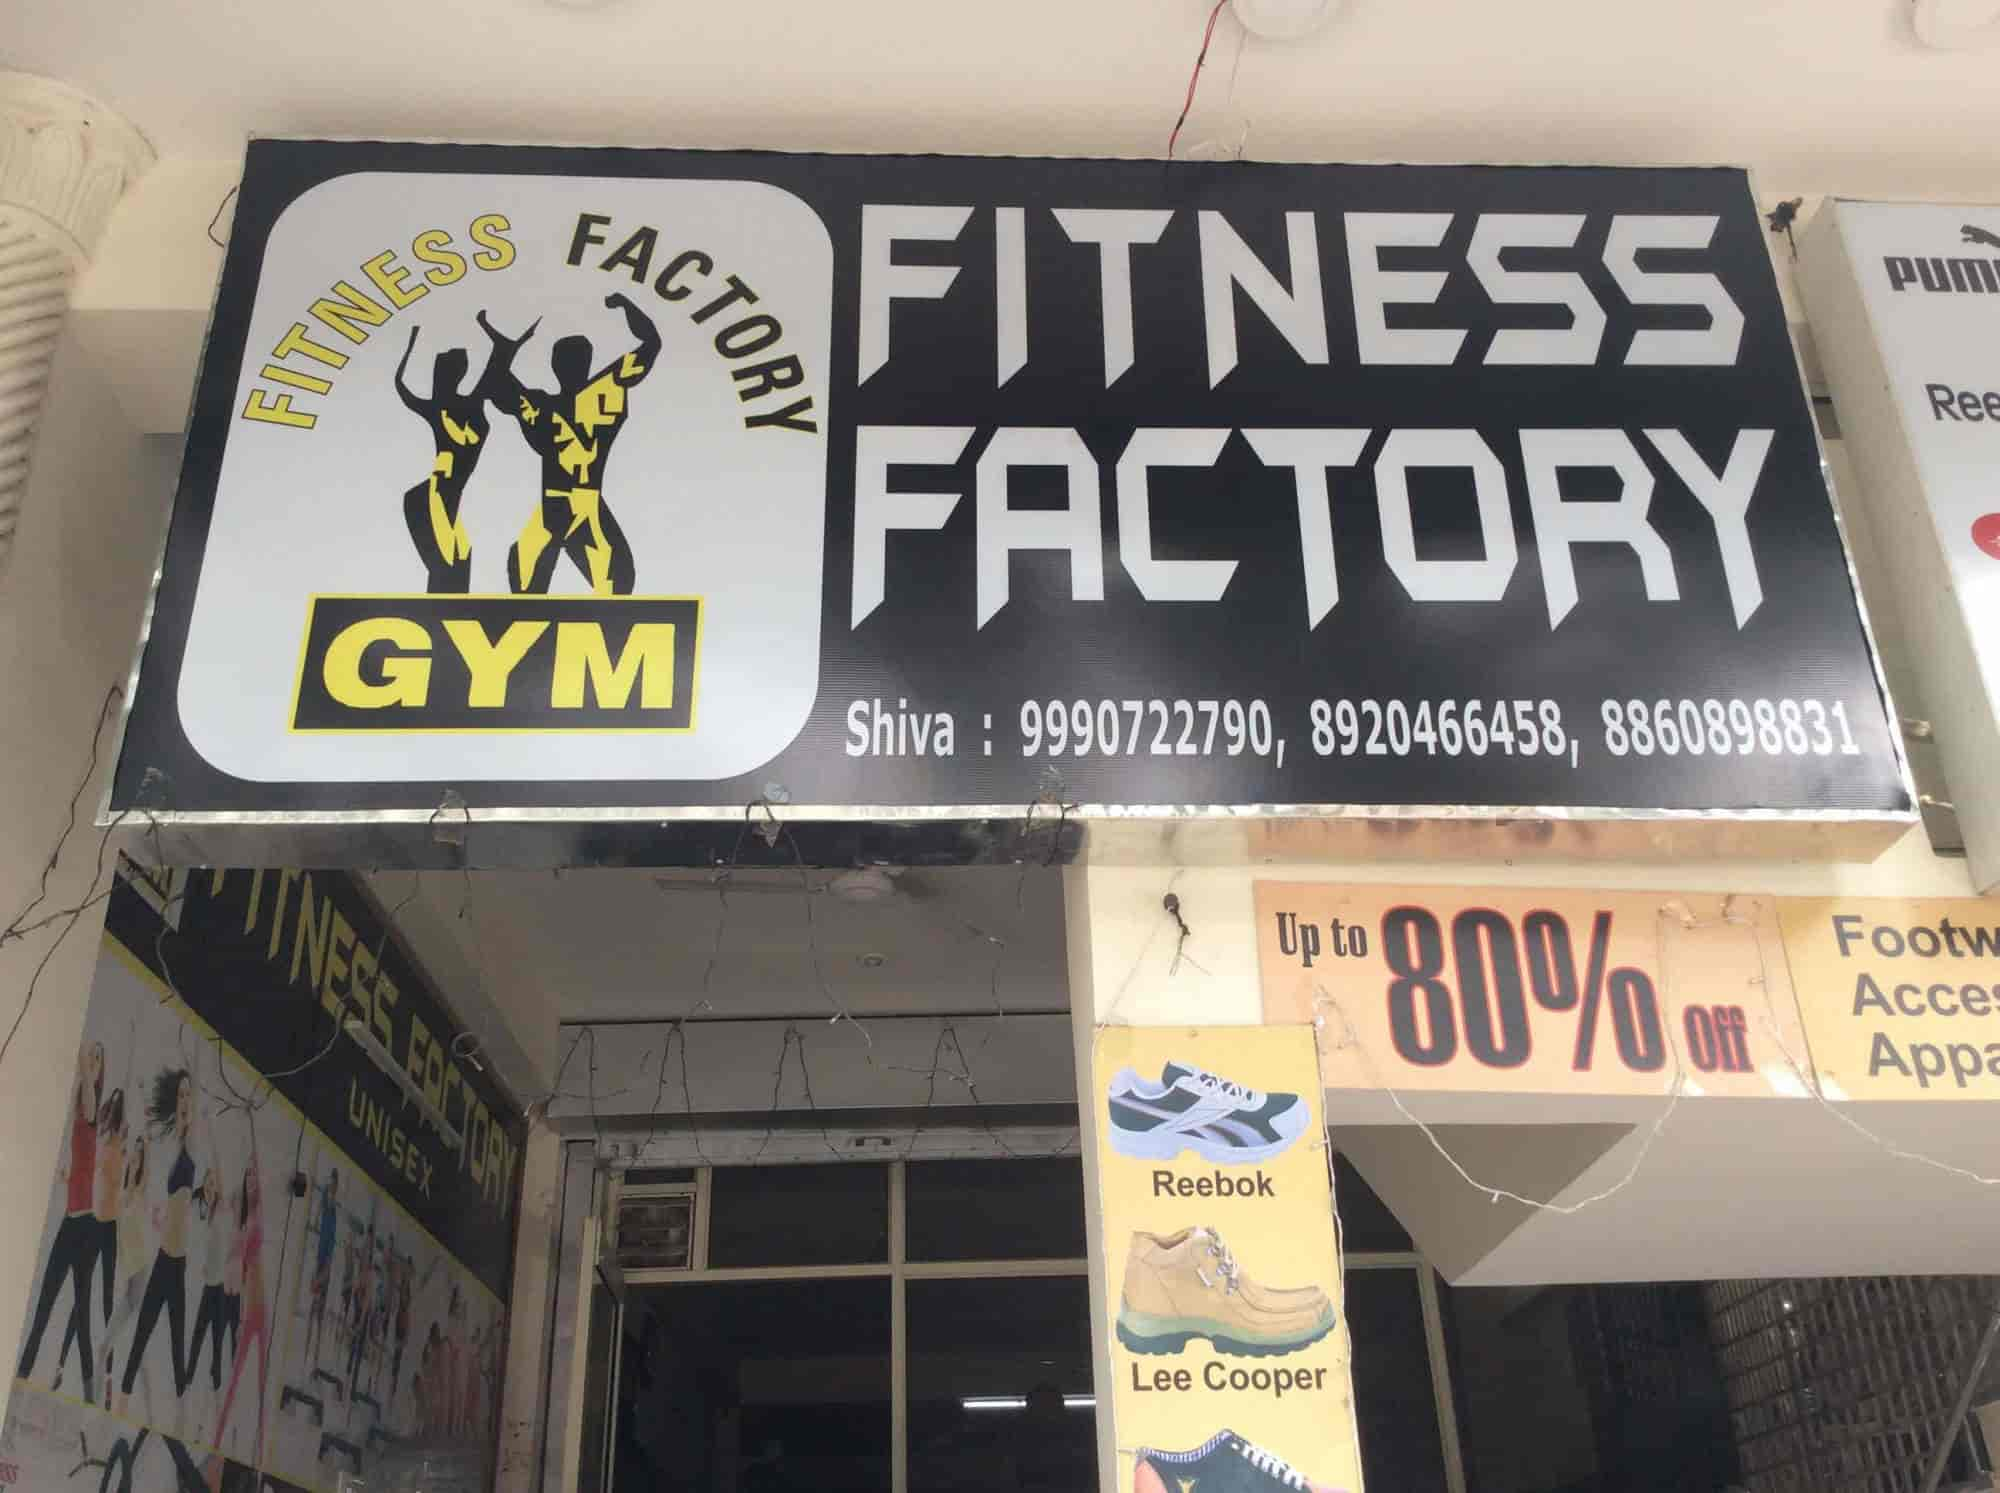 Unisexy fitness factory